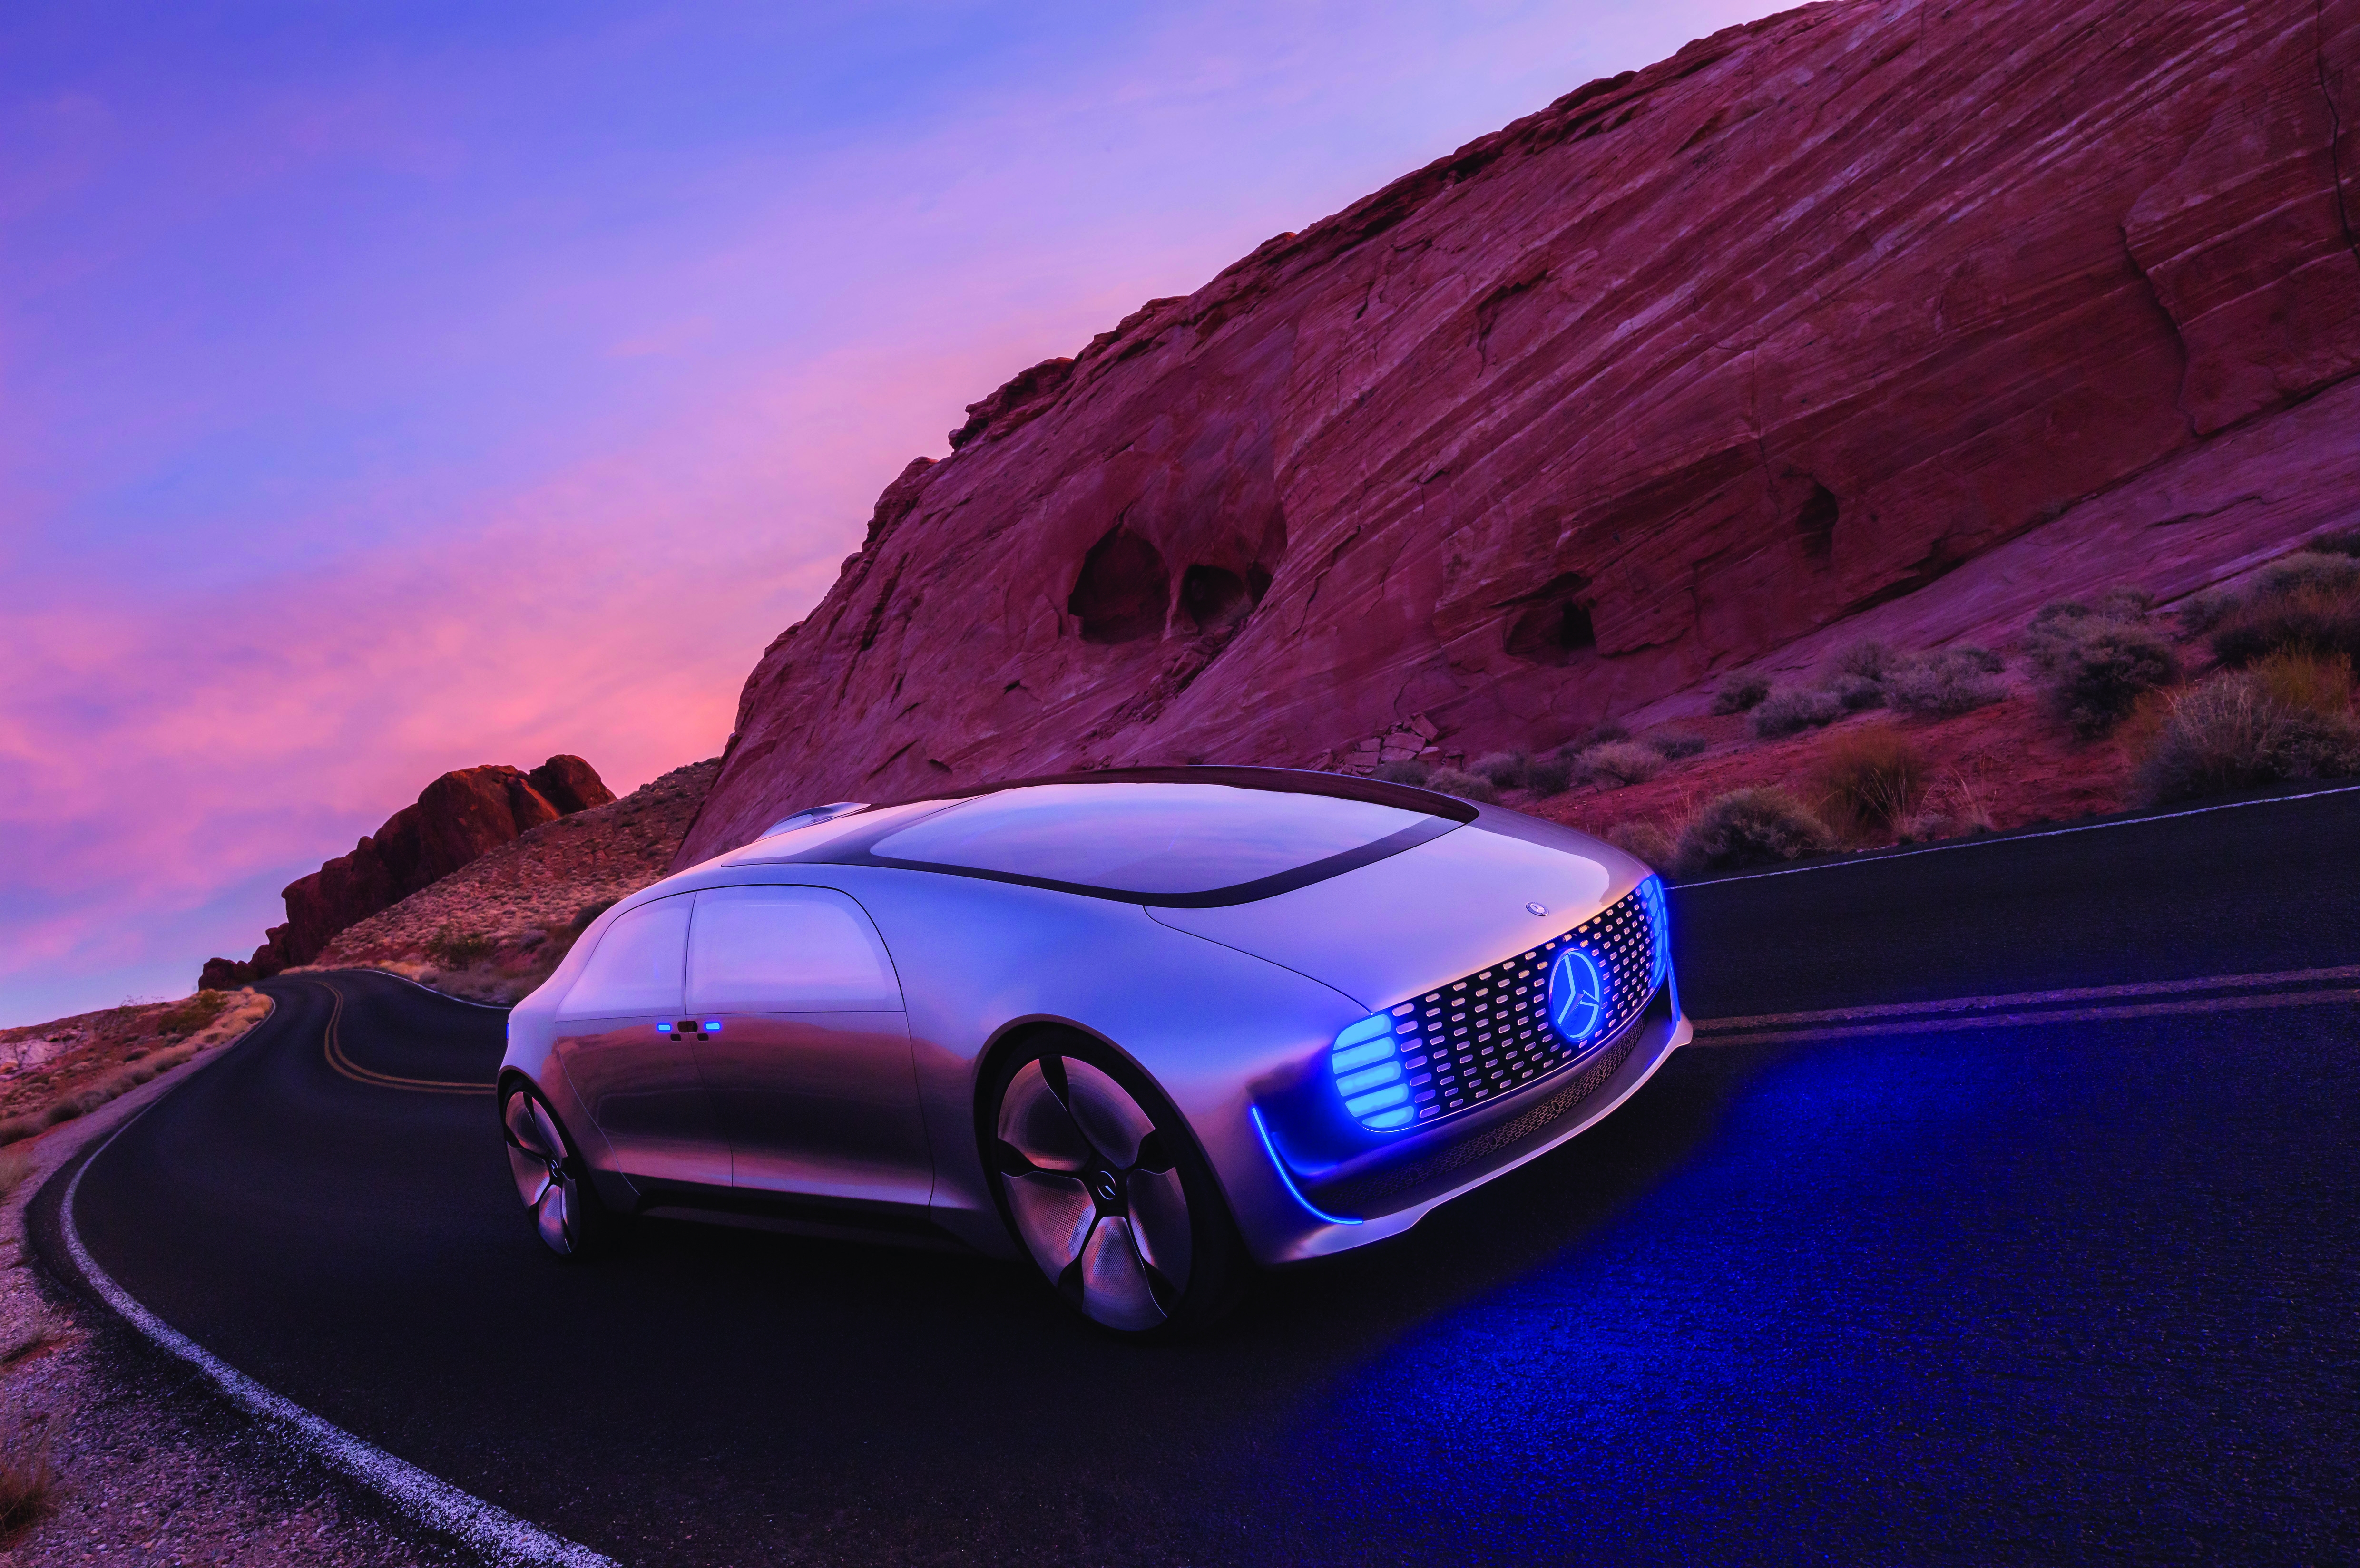 Cars Of The Future Skills To Imagine Design And Develop The Cars Of The